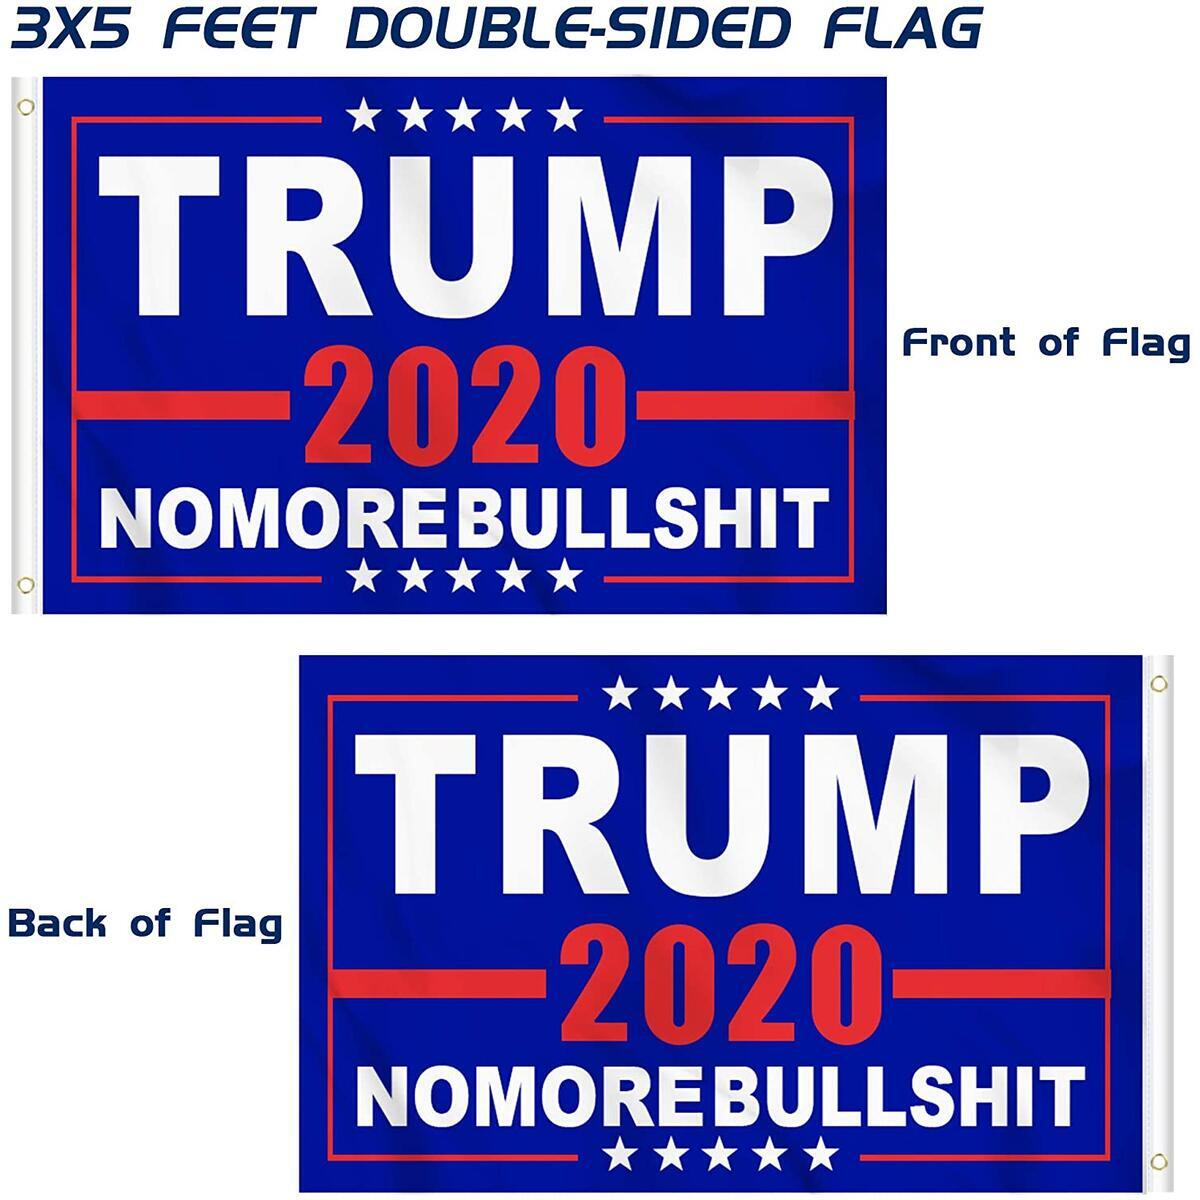 KENPMA 3x5 Feet Double-Sided Trump 2020 Keep America Great Flag No More Bullshit Flag Heavy Duty Printed Polyester 3-ply with Brass Grommets - Indoor/Outdoor - Vibrant Colors, Pack of 2